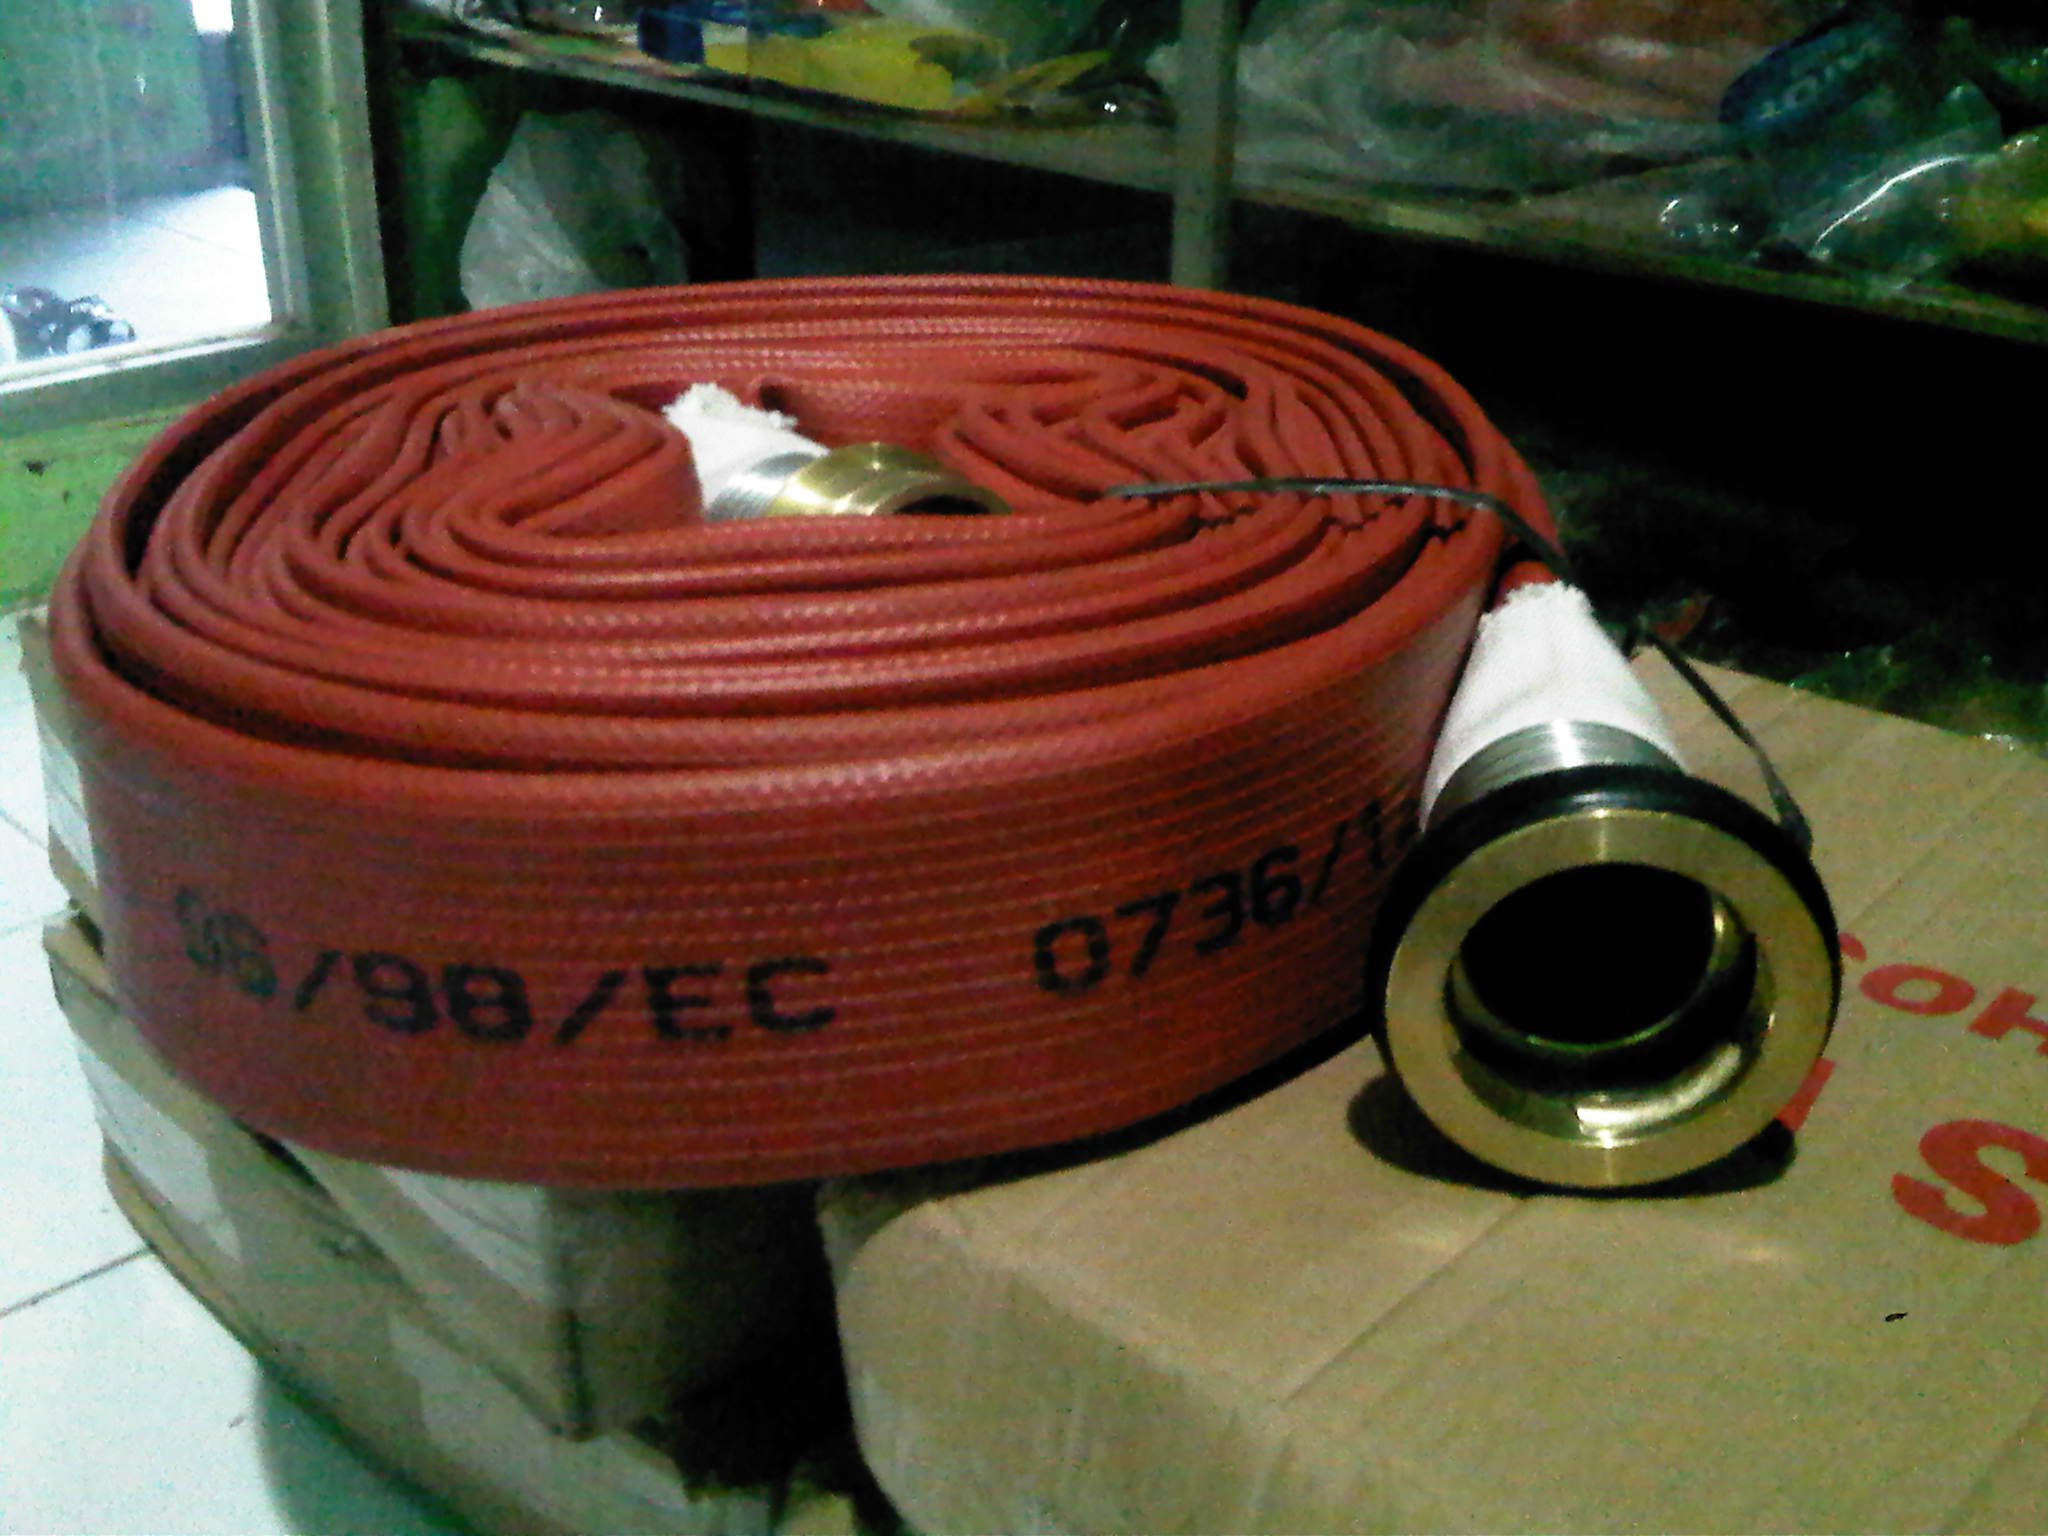 rubber osw fire hose, oswal rubber industries, rubber roofing oswestry, harga selang pemadam, harga selang pemadam kebakaran, harga selang pemadam germany, harga selang pemadam karet, daftar harga selang pemadam kebakaran, harga selang pemadam kebakaran baru, rubber hose